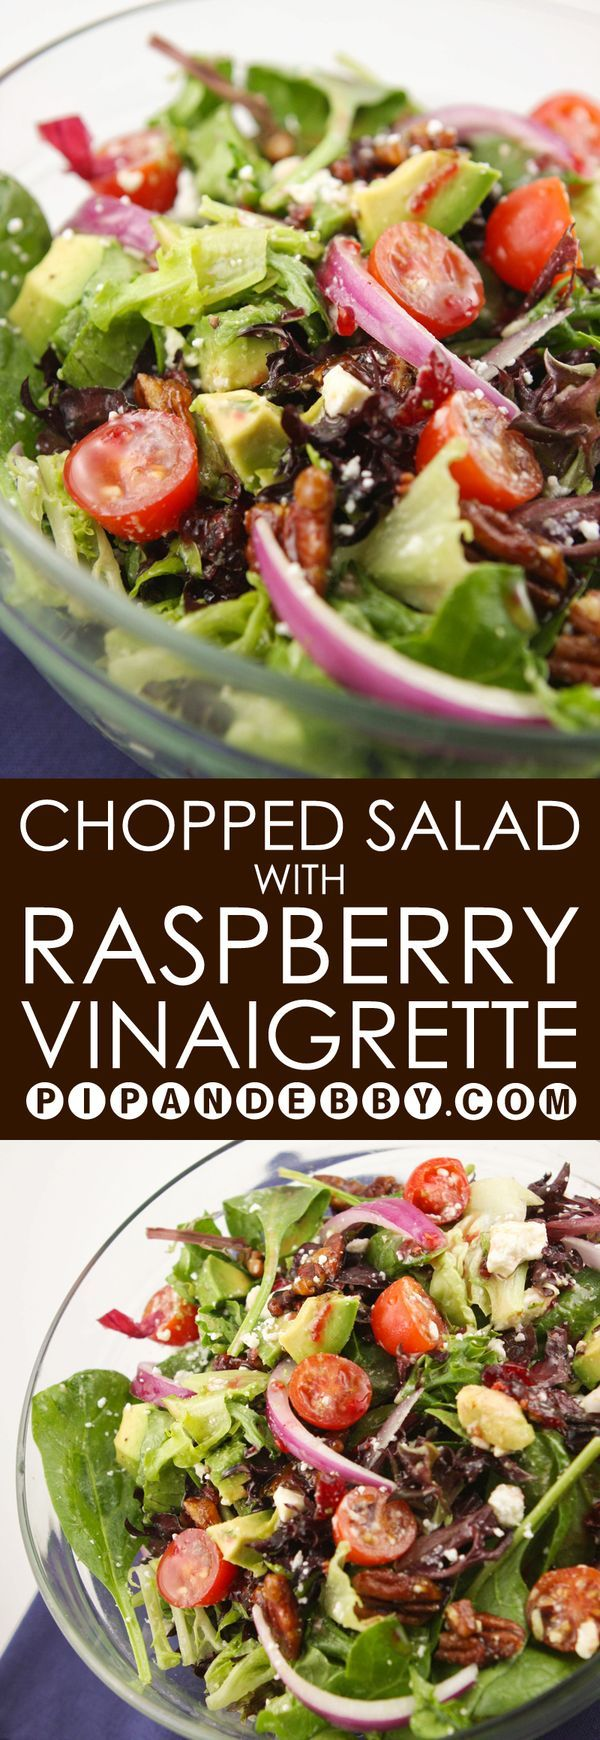 This Chopped Salad with Raspberry Vinaigrette  is delicious and packed with texture and flavor!